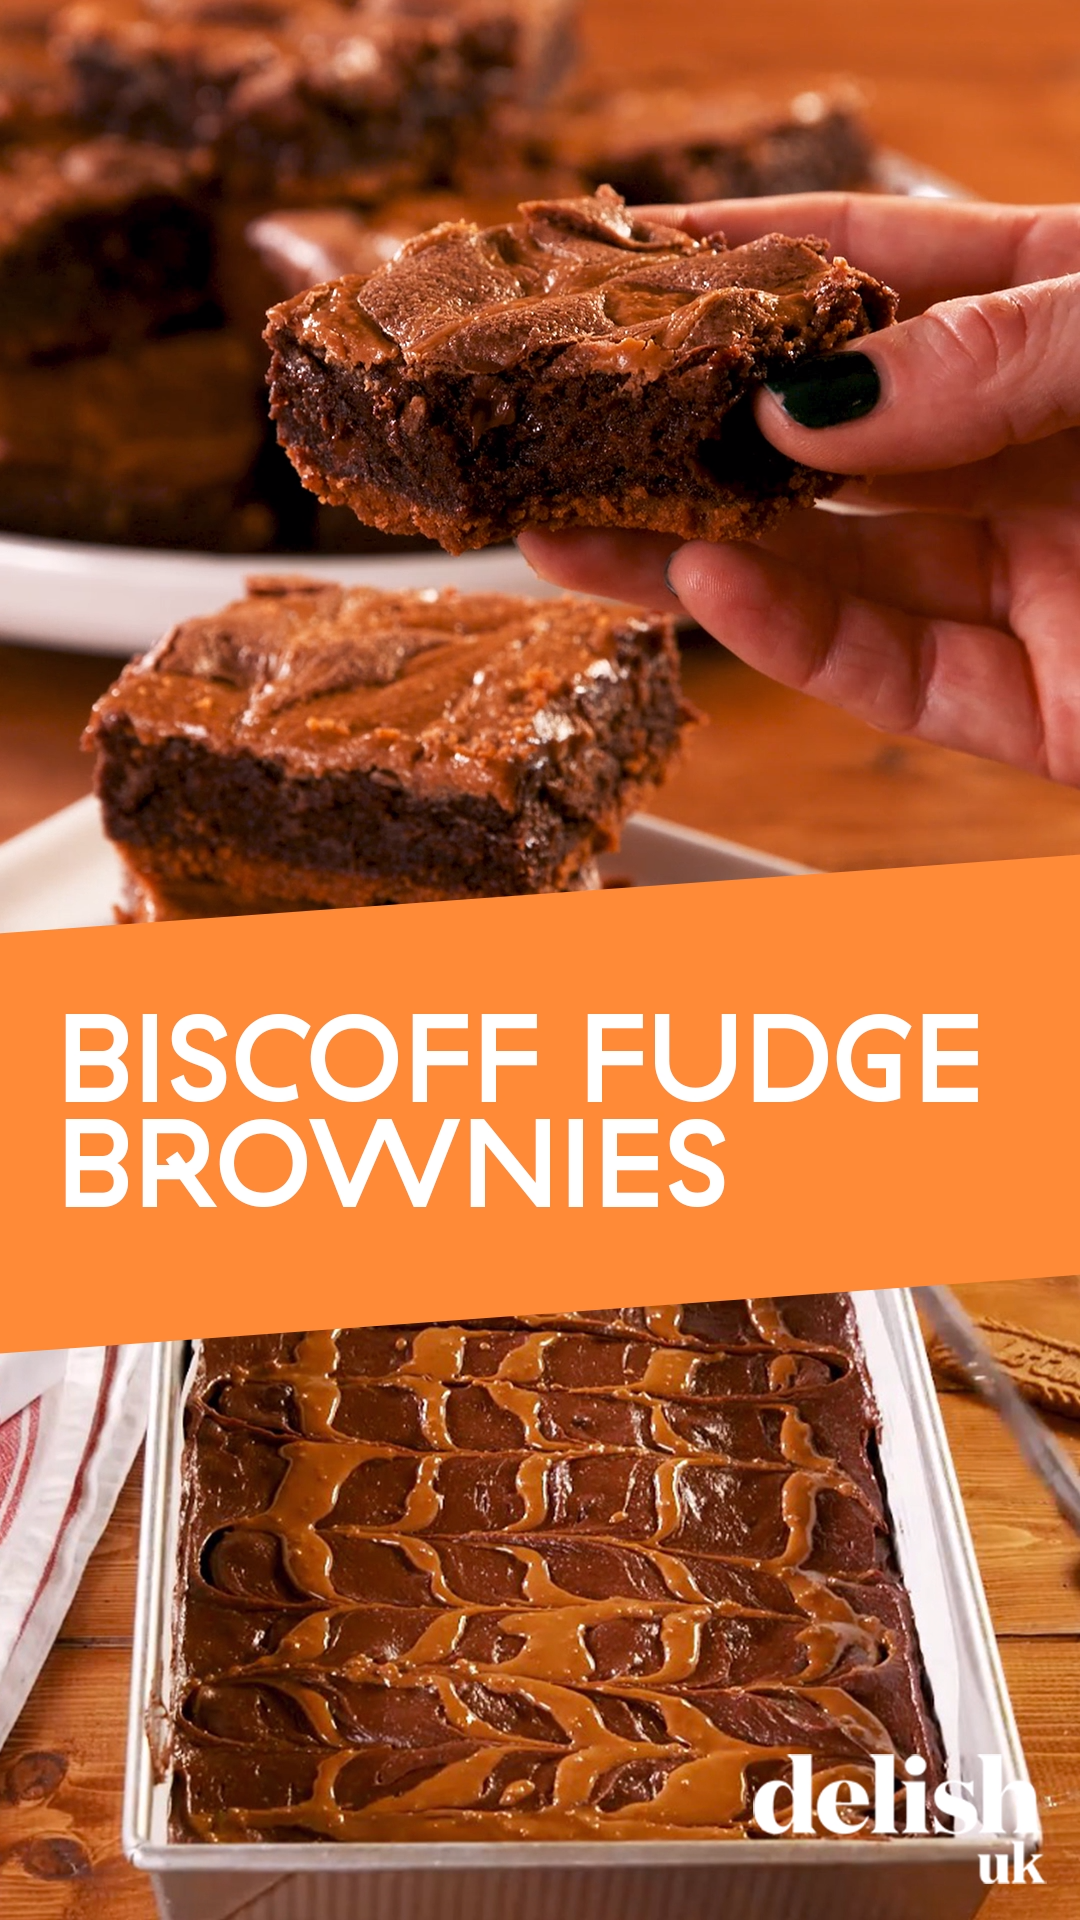 Greatest At Any Time Biscoff Brownies Https Www 1 Emailhelpr Com 2020 08 24 Greatest At Any Time Bis Fudge Brownie Recipe Chocolate Brownie Recipe Desserts